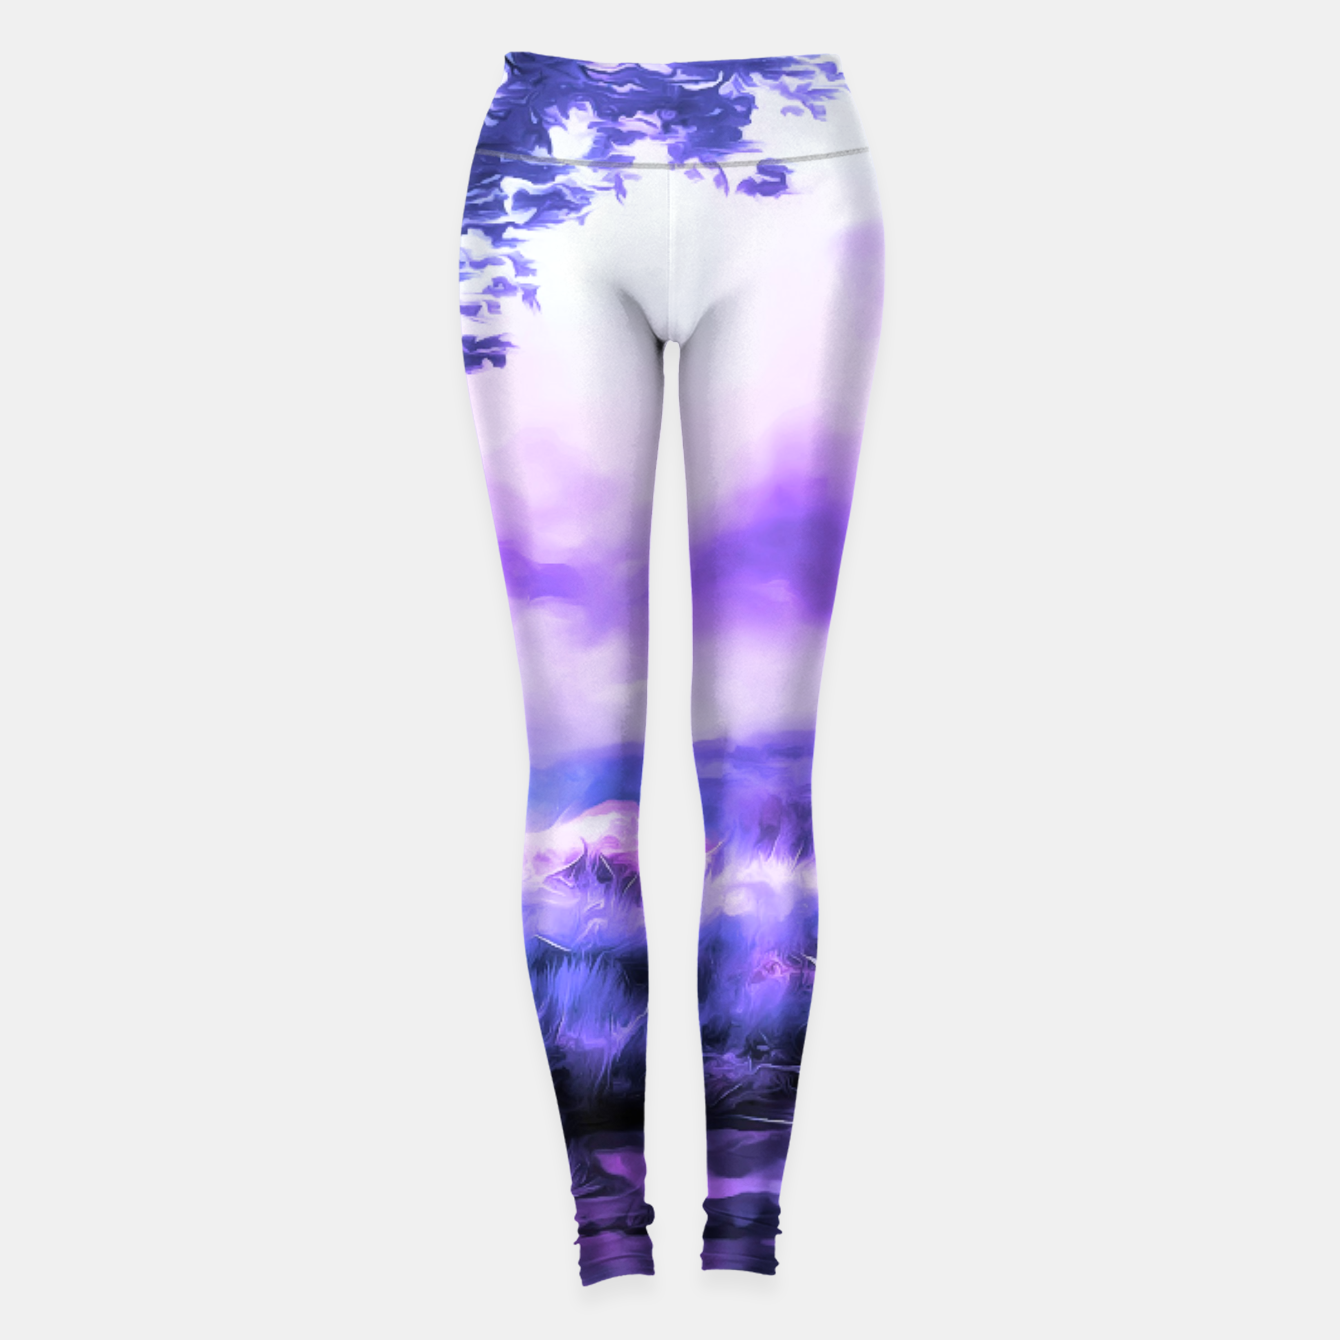 Foto acrylic misty forest painting 2 acrdb Leggings - Live Heroes